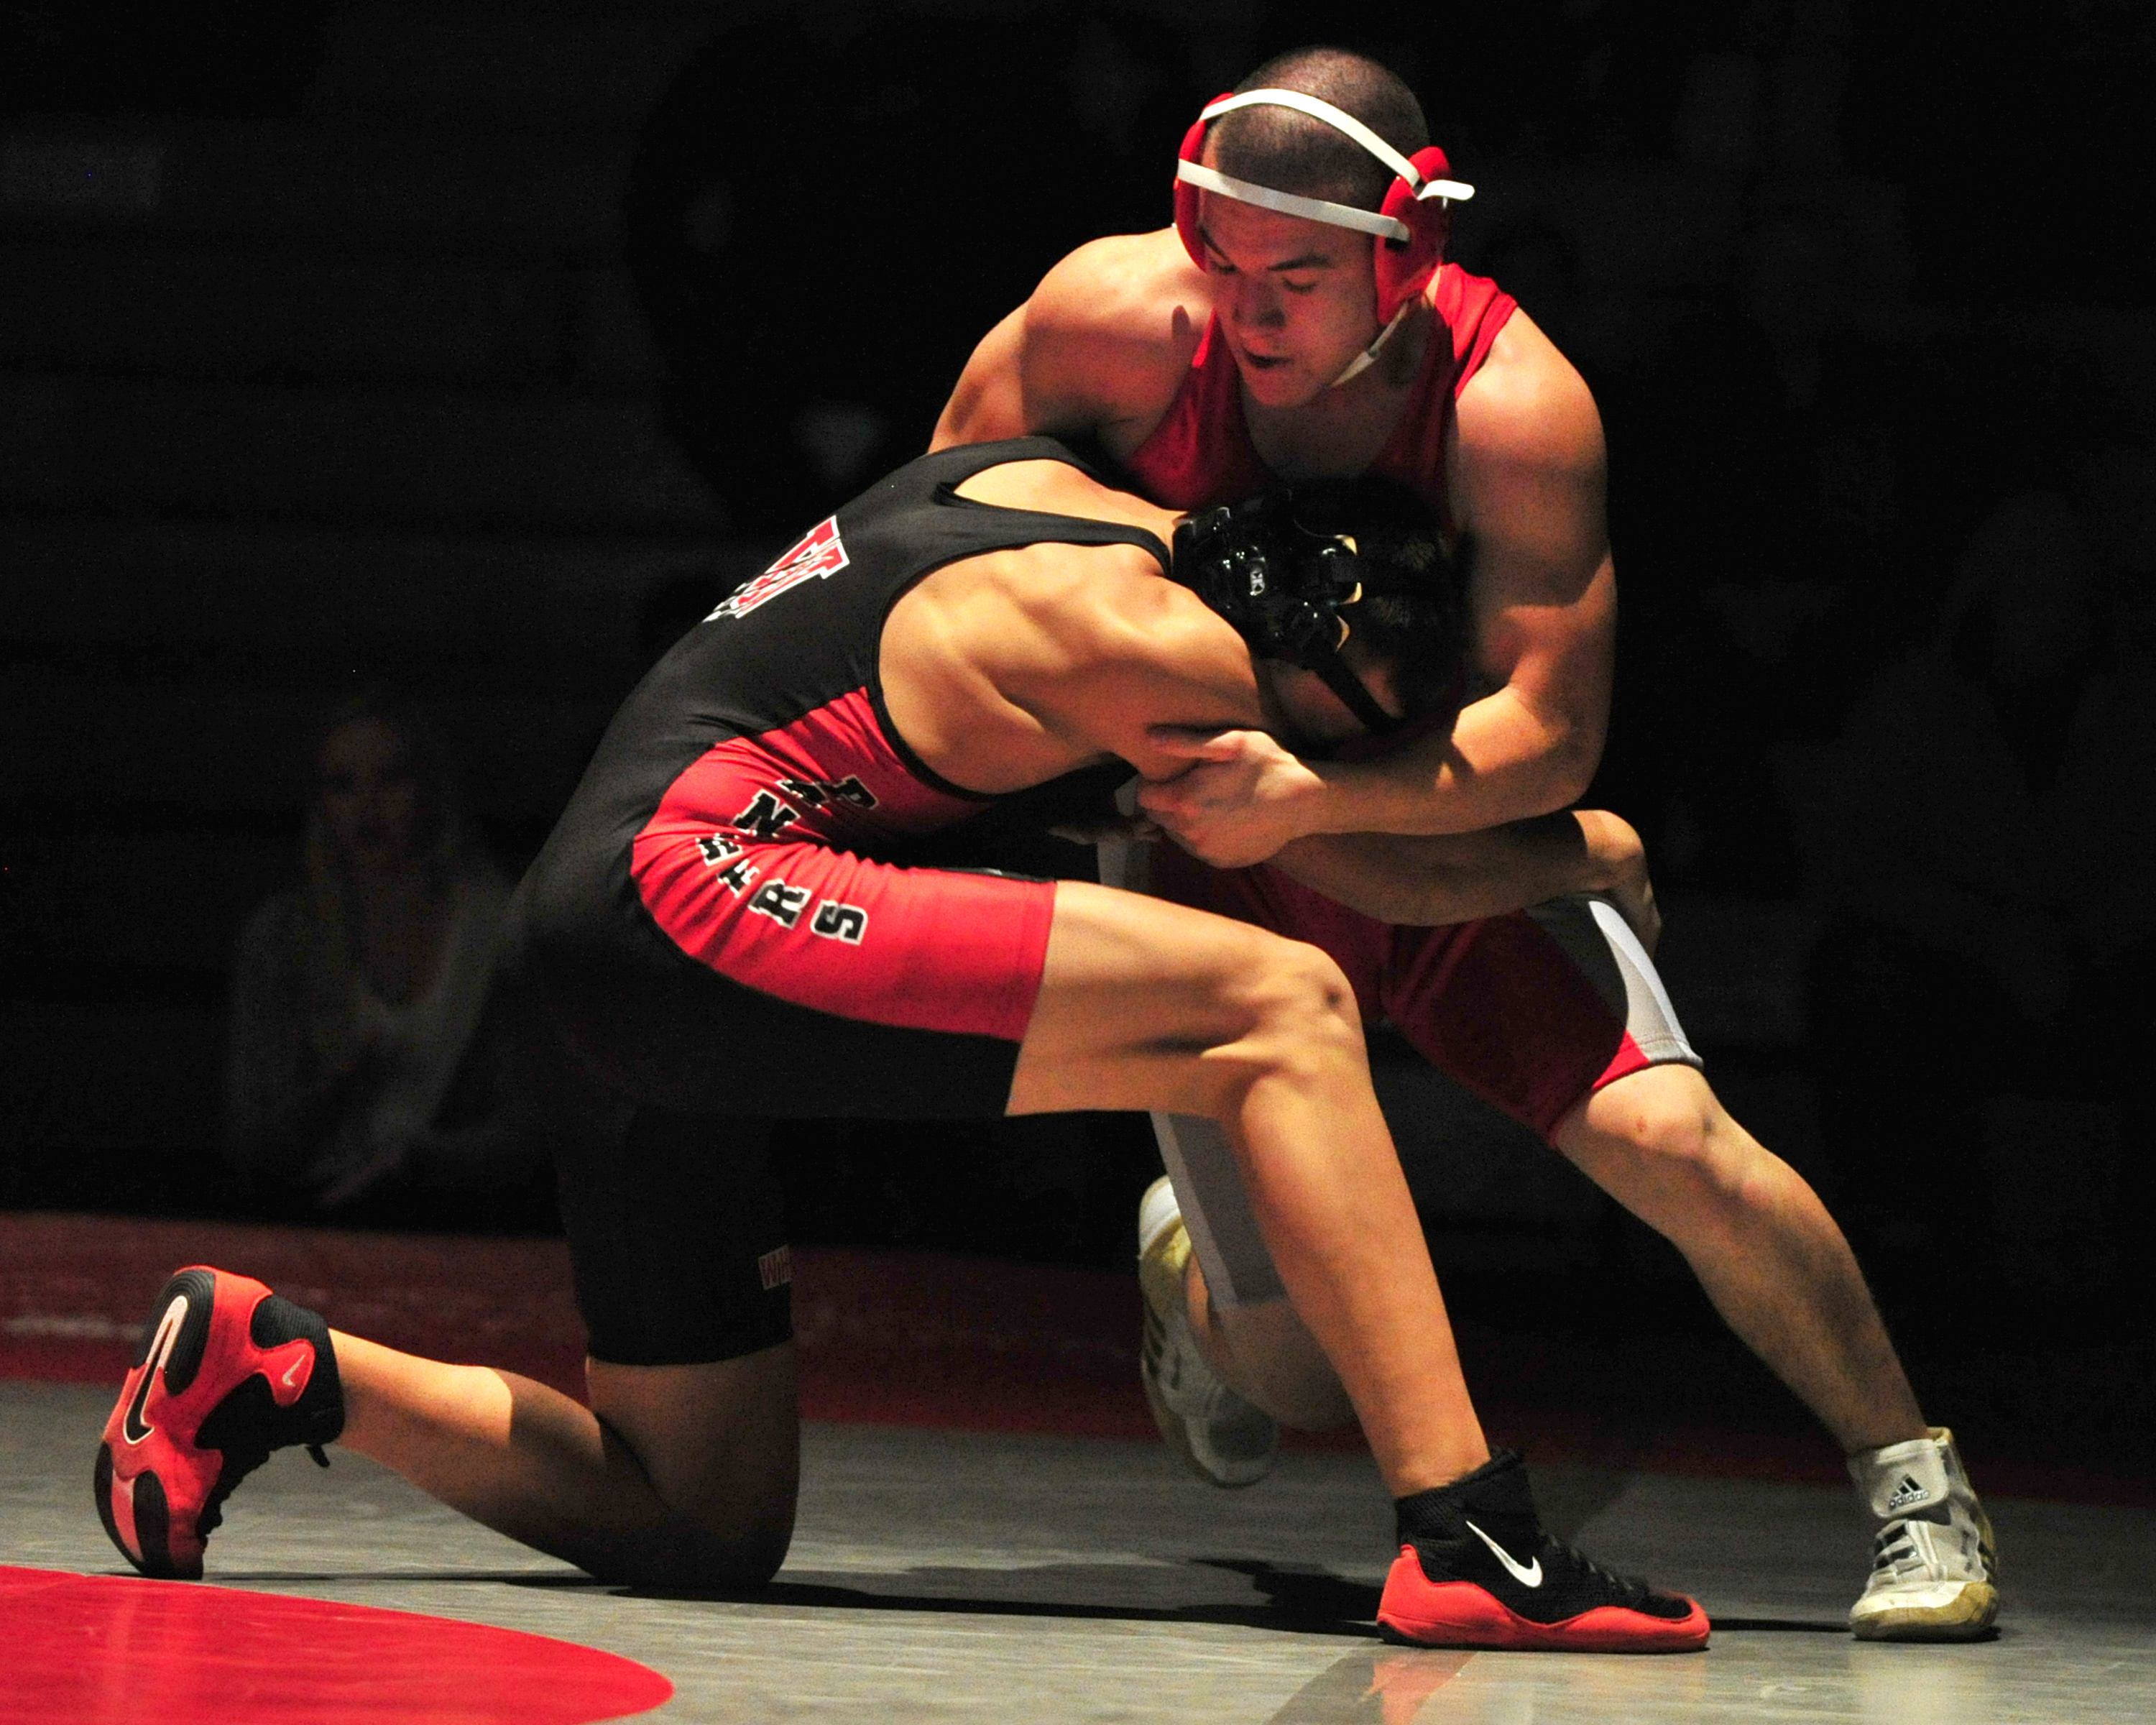 Animated Wallpaper For Mobile Phone Gif Download High School Wrestling Wallpapers Gallery